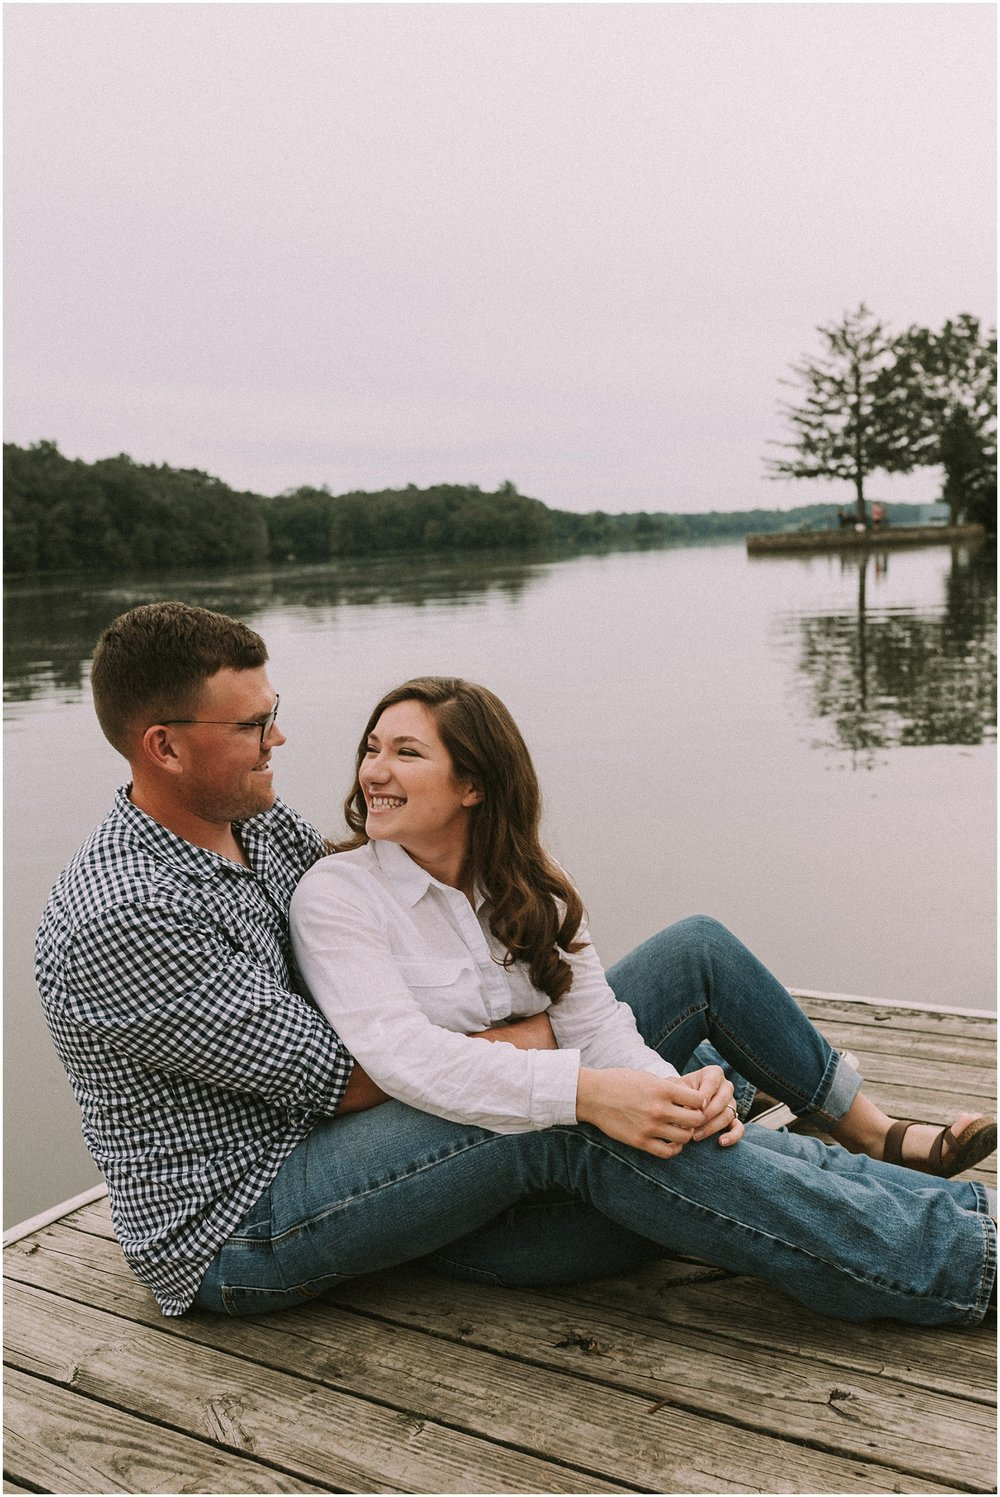 gifford pinchot state park-engagement-anniversary-photo session-outdoor photos-husband-wife-central pennsylvania_0308.jpg